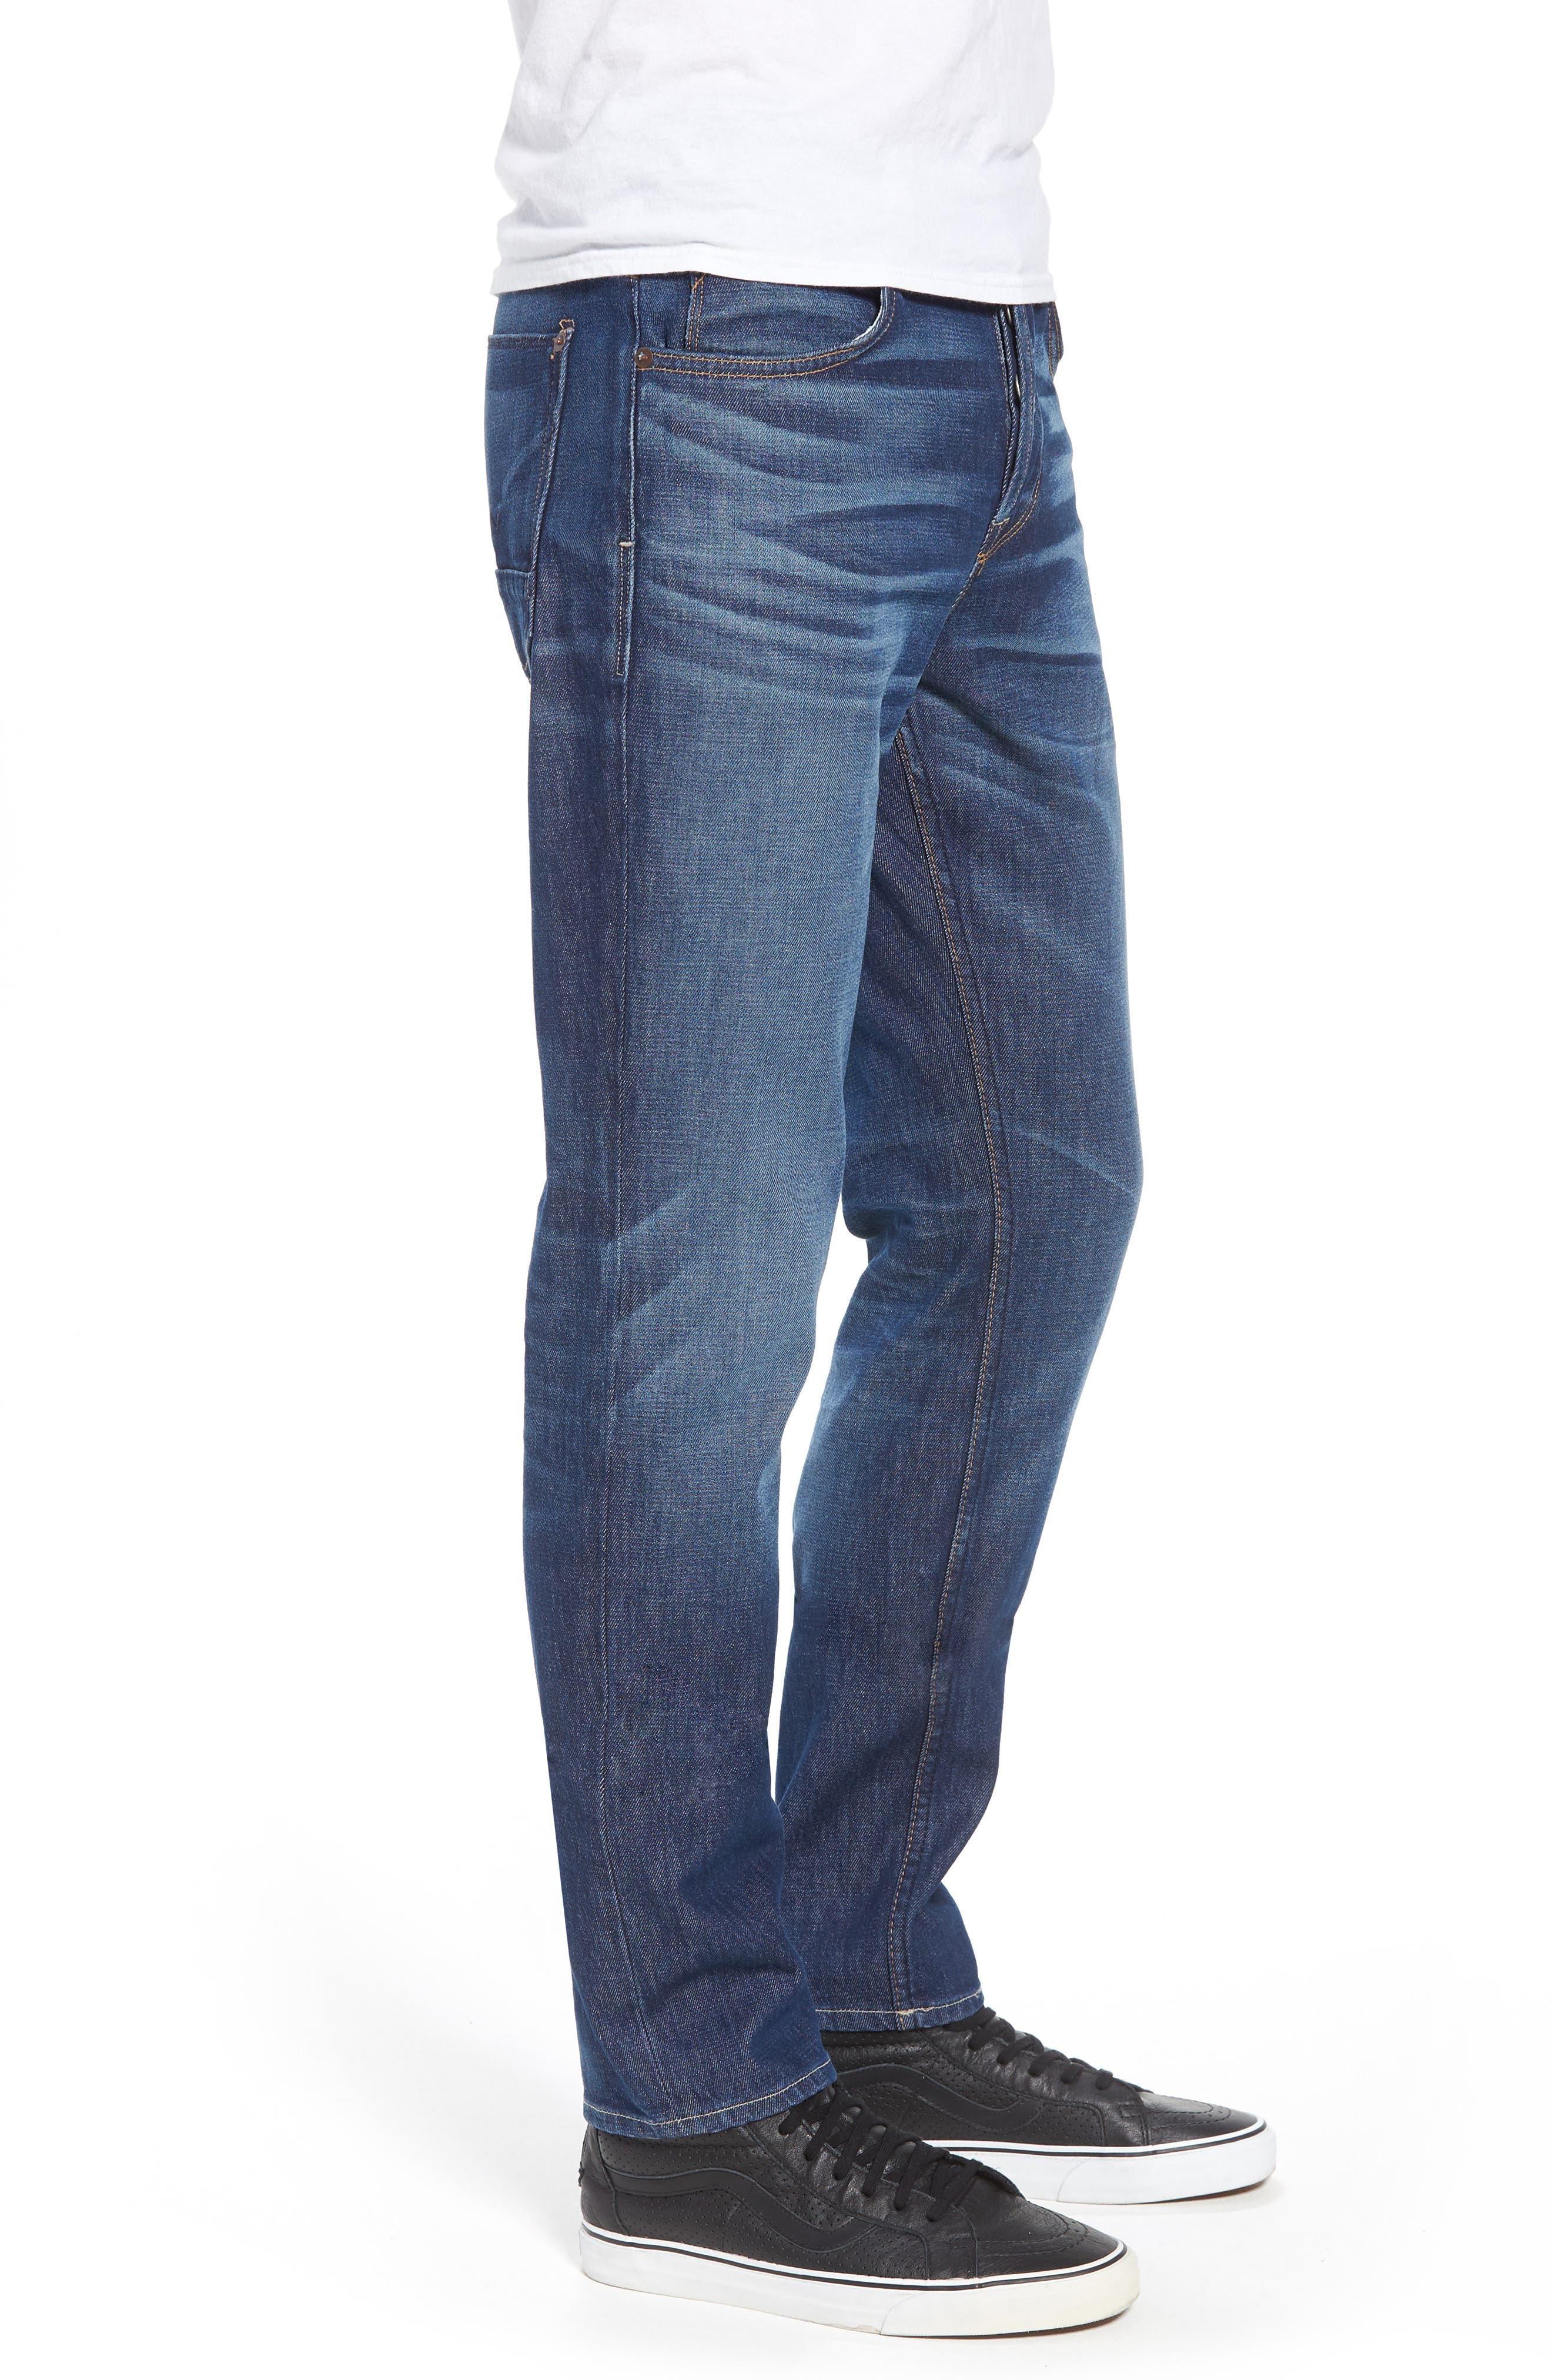 Axl Skinny Fit Jeans,                             Alternate thumbnail 3, color,                             425